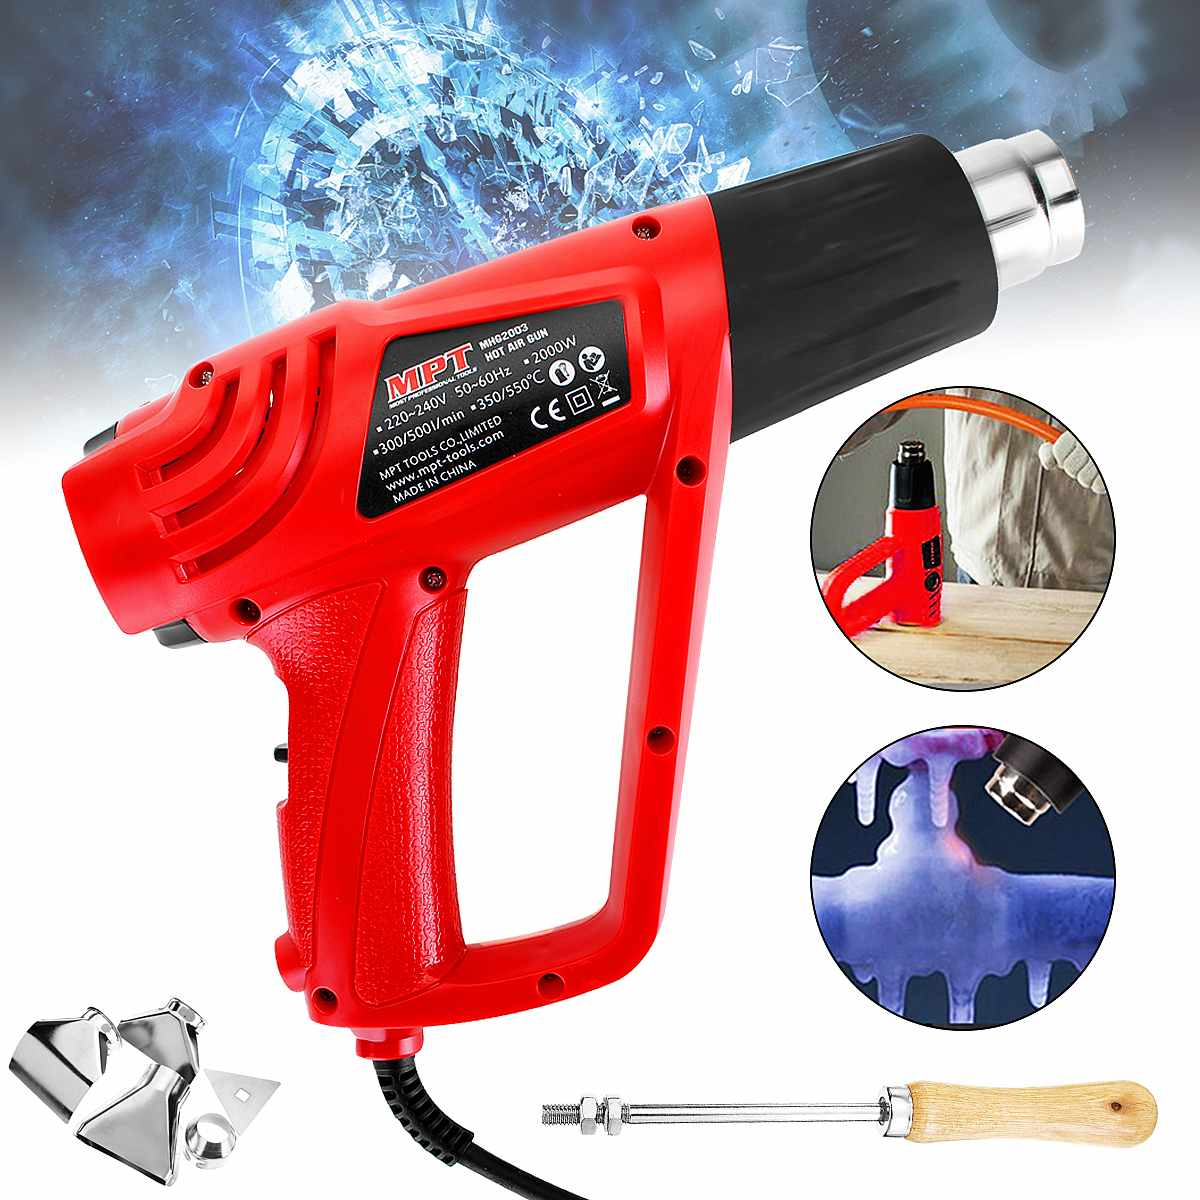 2000W 220V EU Heat Guns Hot Air Guns Solder Hair Dryer Temperature-controlled Building Hot Air Soldering Hair Dryer